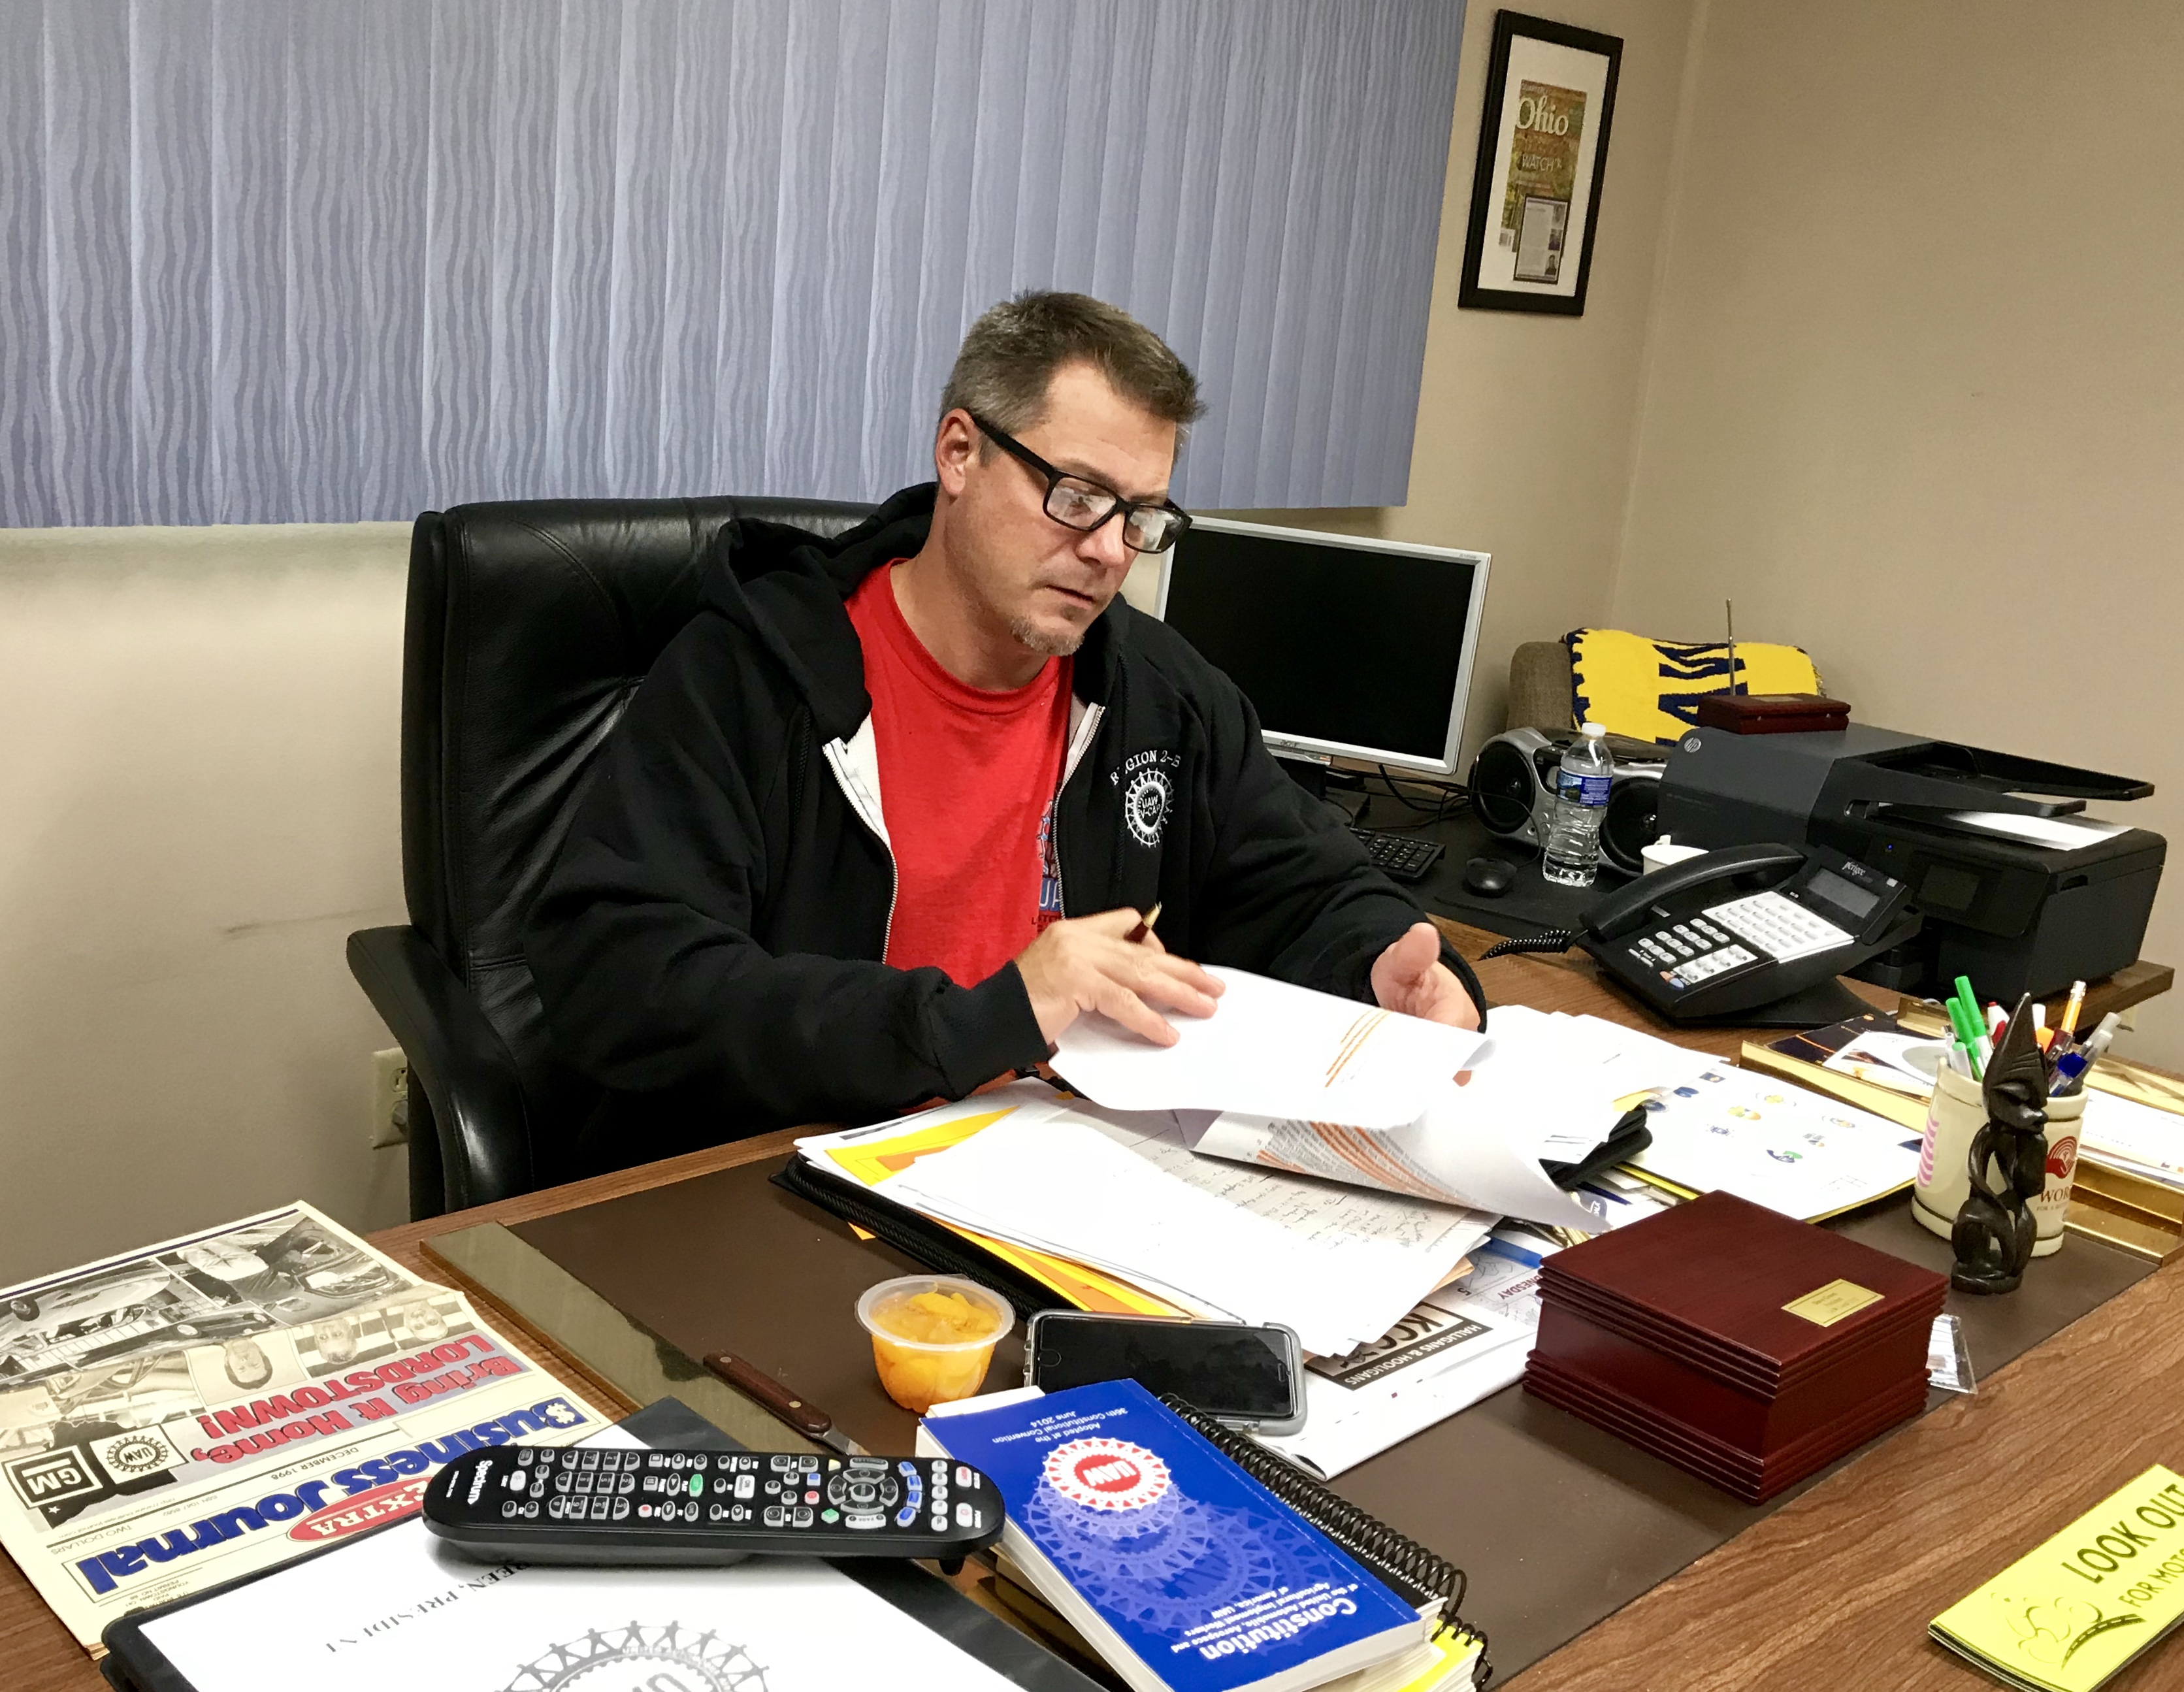 UAW Local 1112 President David Green at his desk